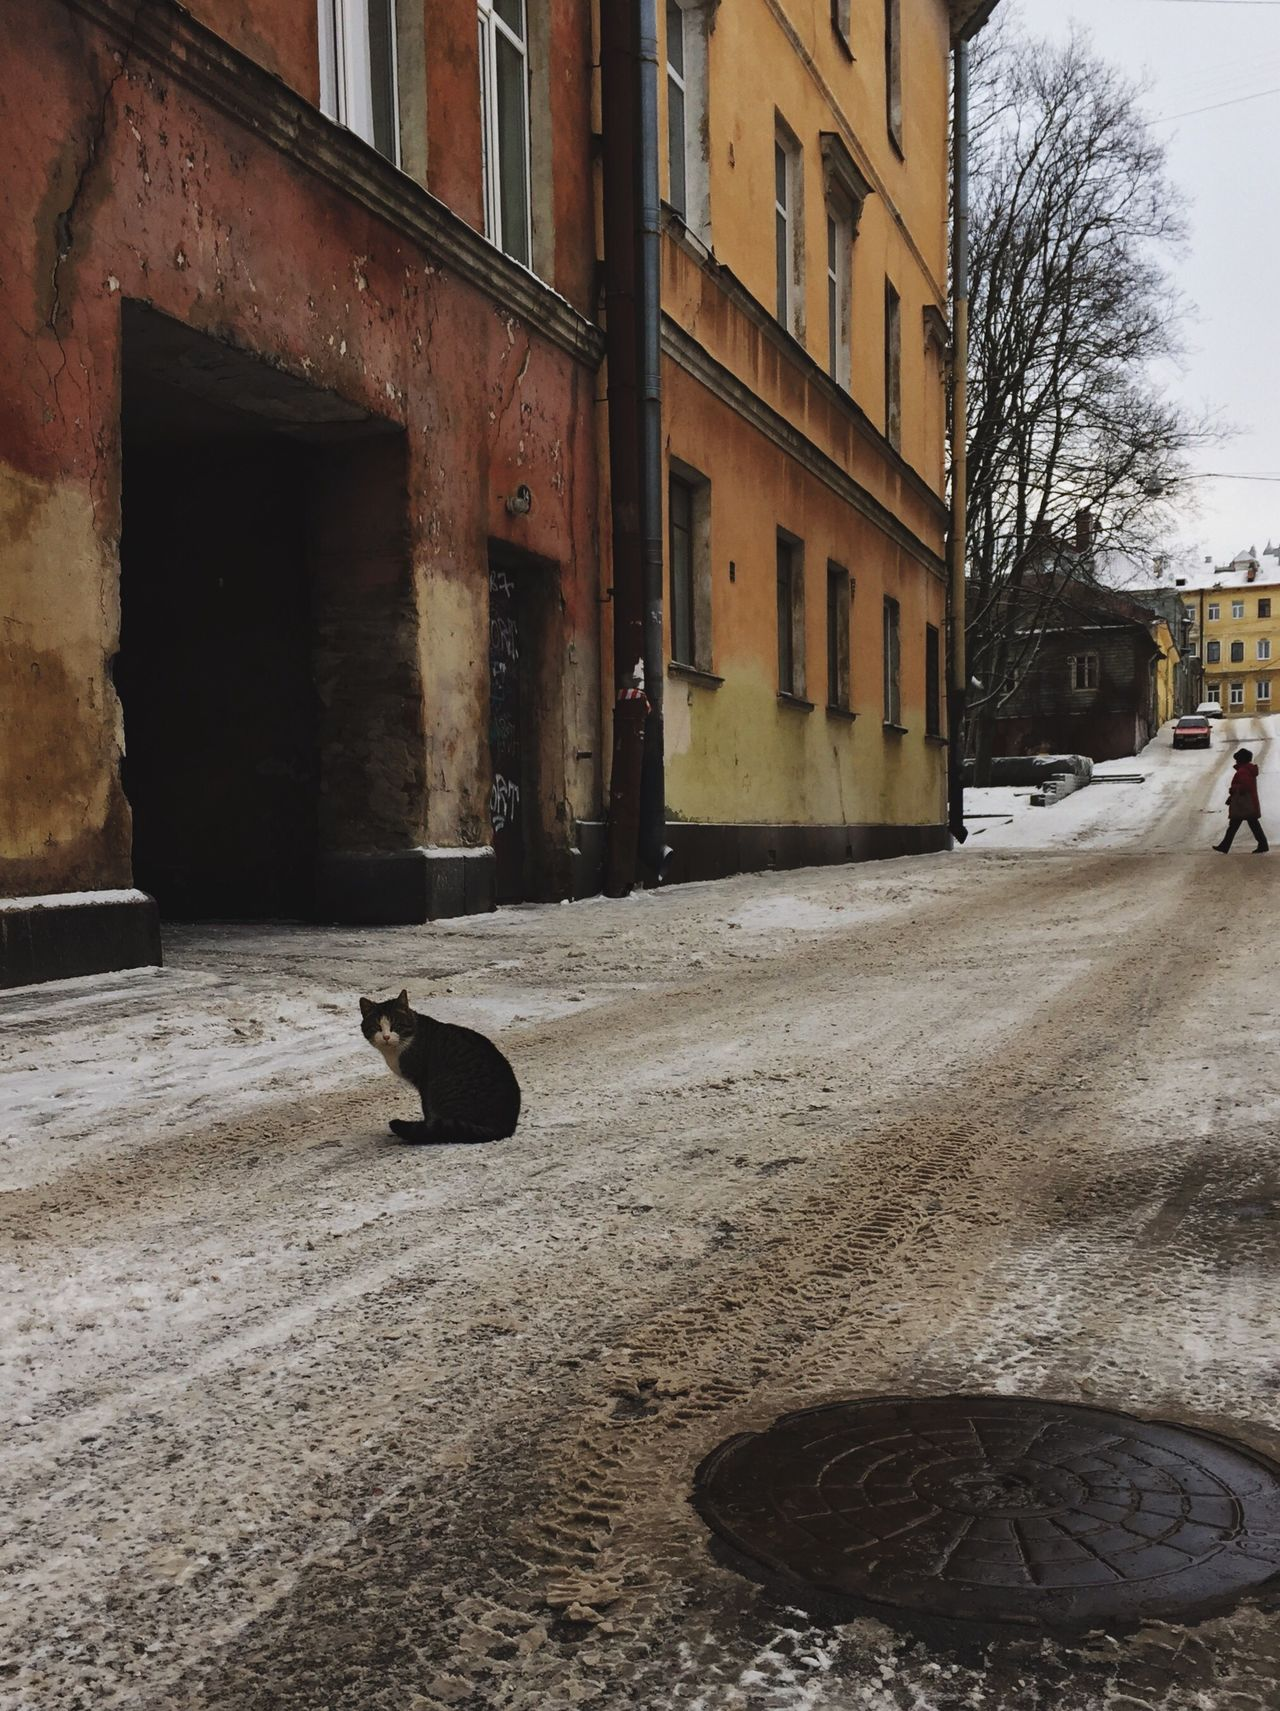 Street Building Exterior Architecture Domestic Animals Domestic Cat One Animal Pets Outdoors Day Russia Winter Snow Vyborg Cat Adapted To The City